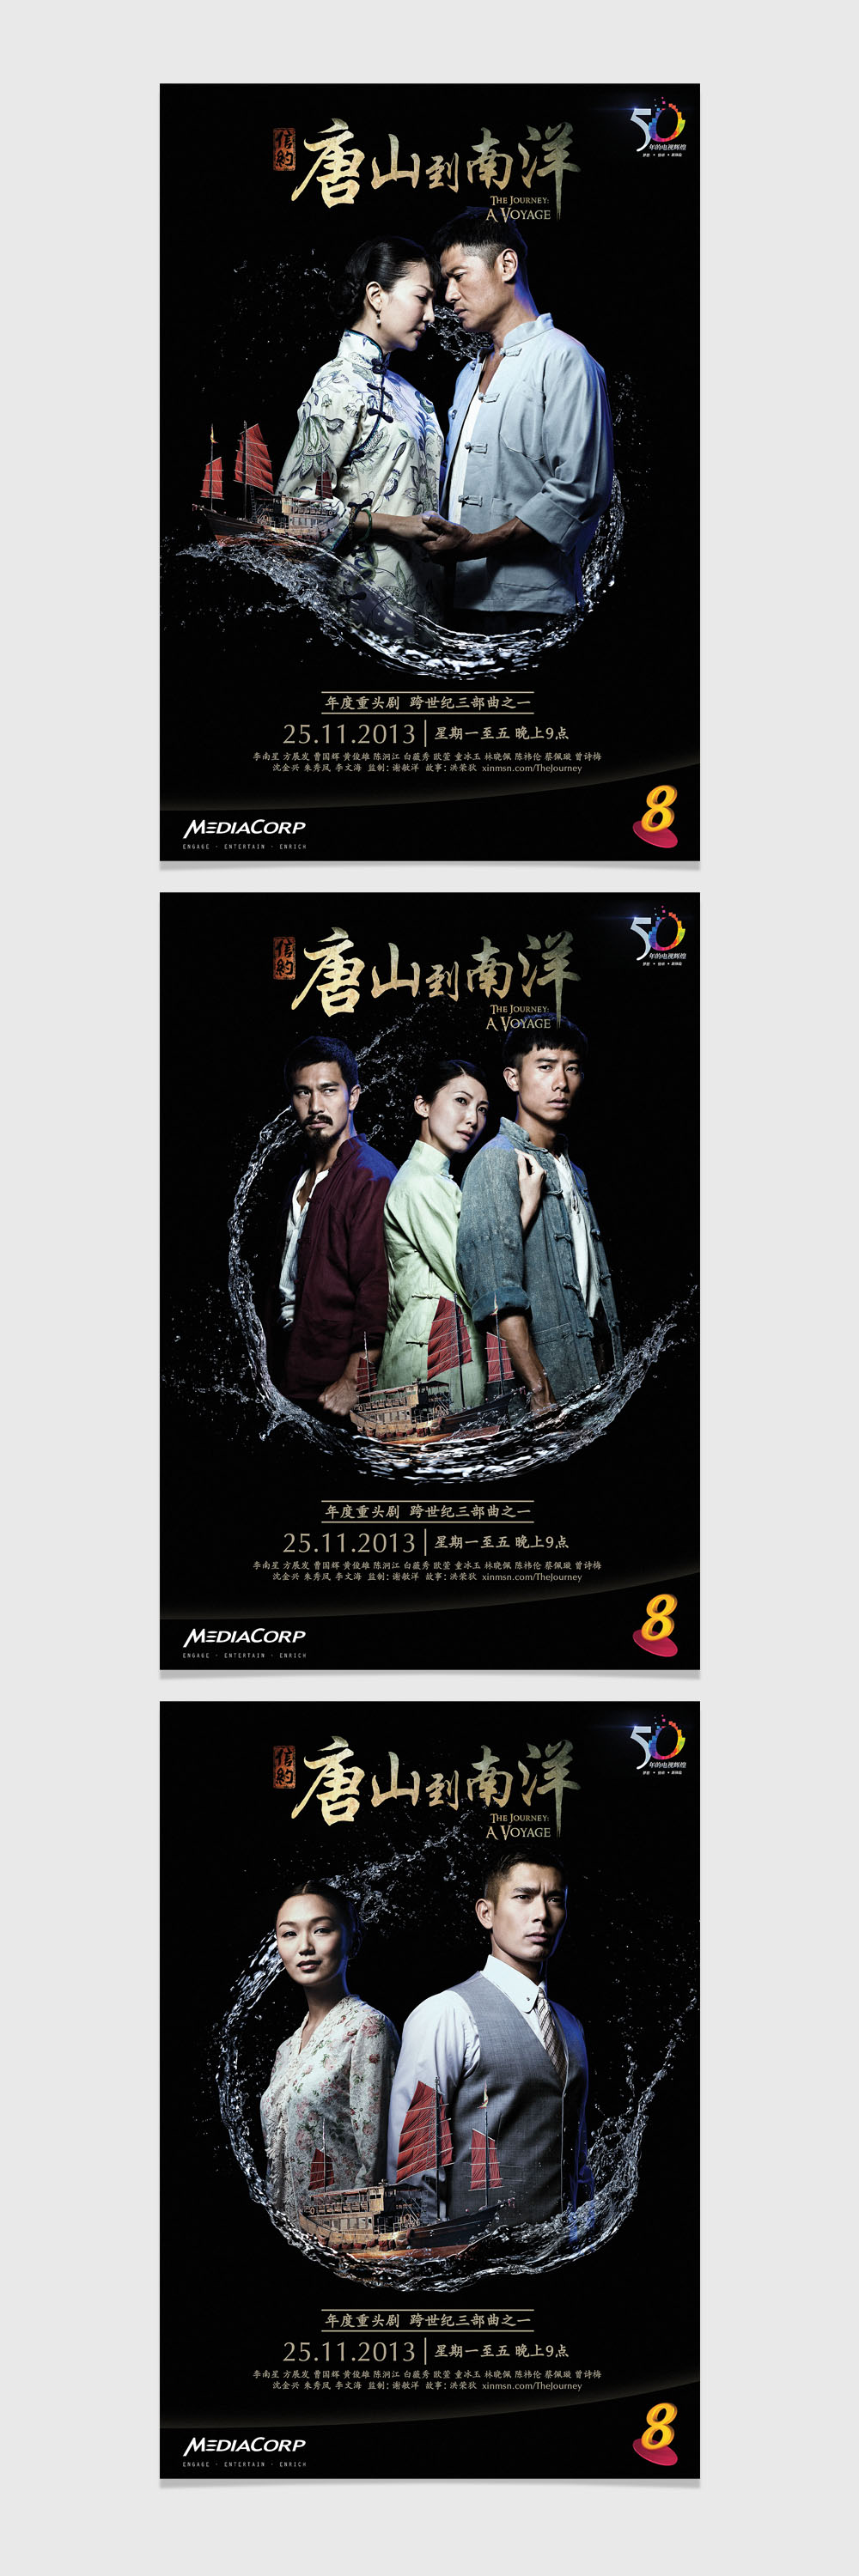 Mediacorp A Voyage